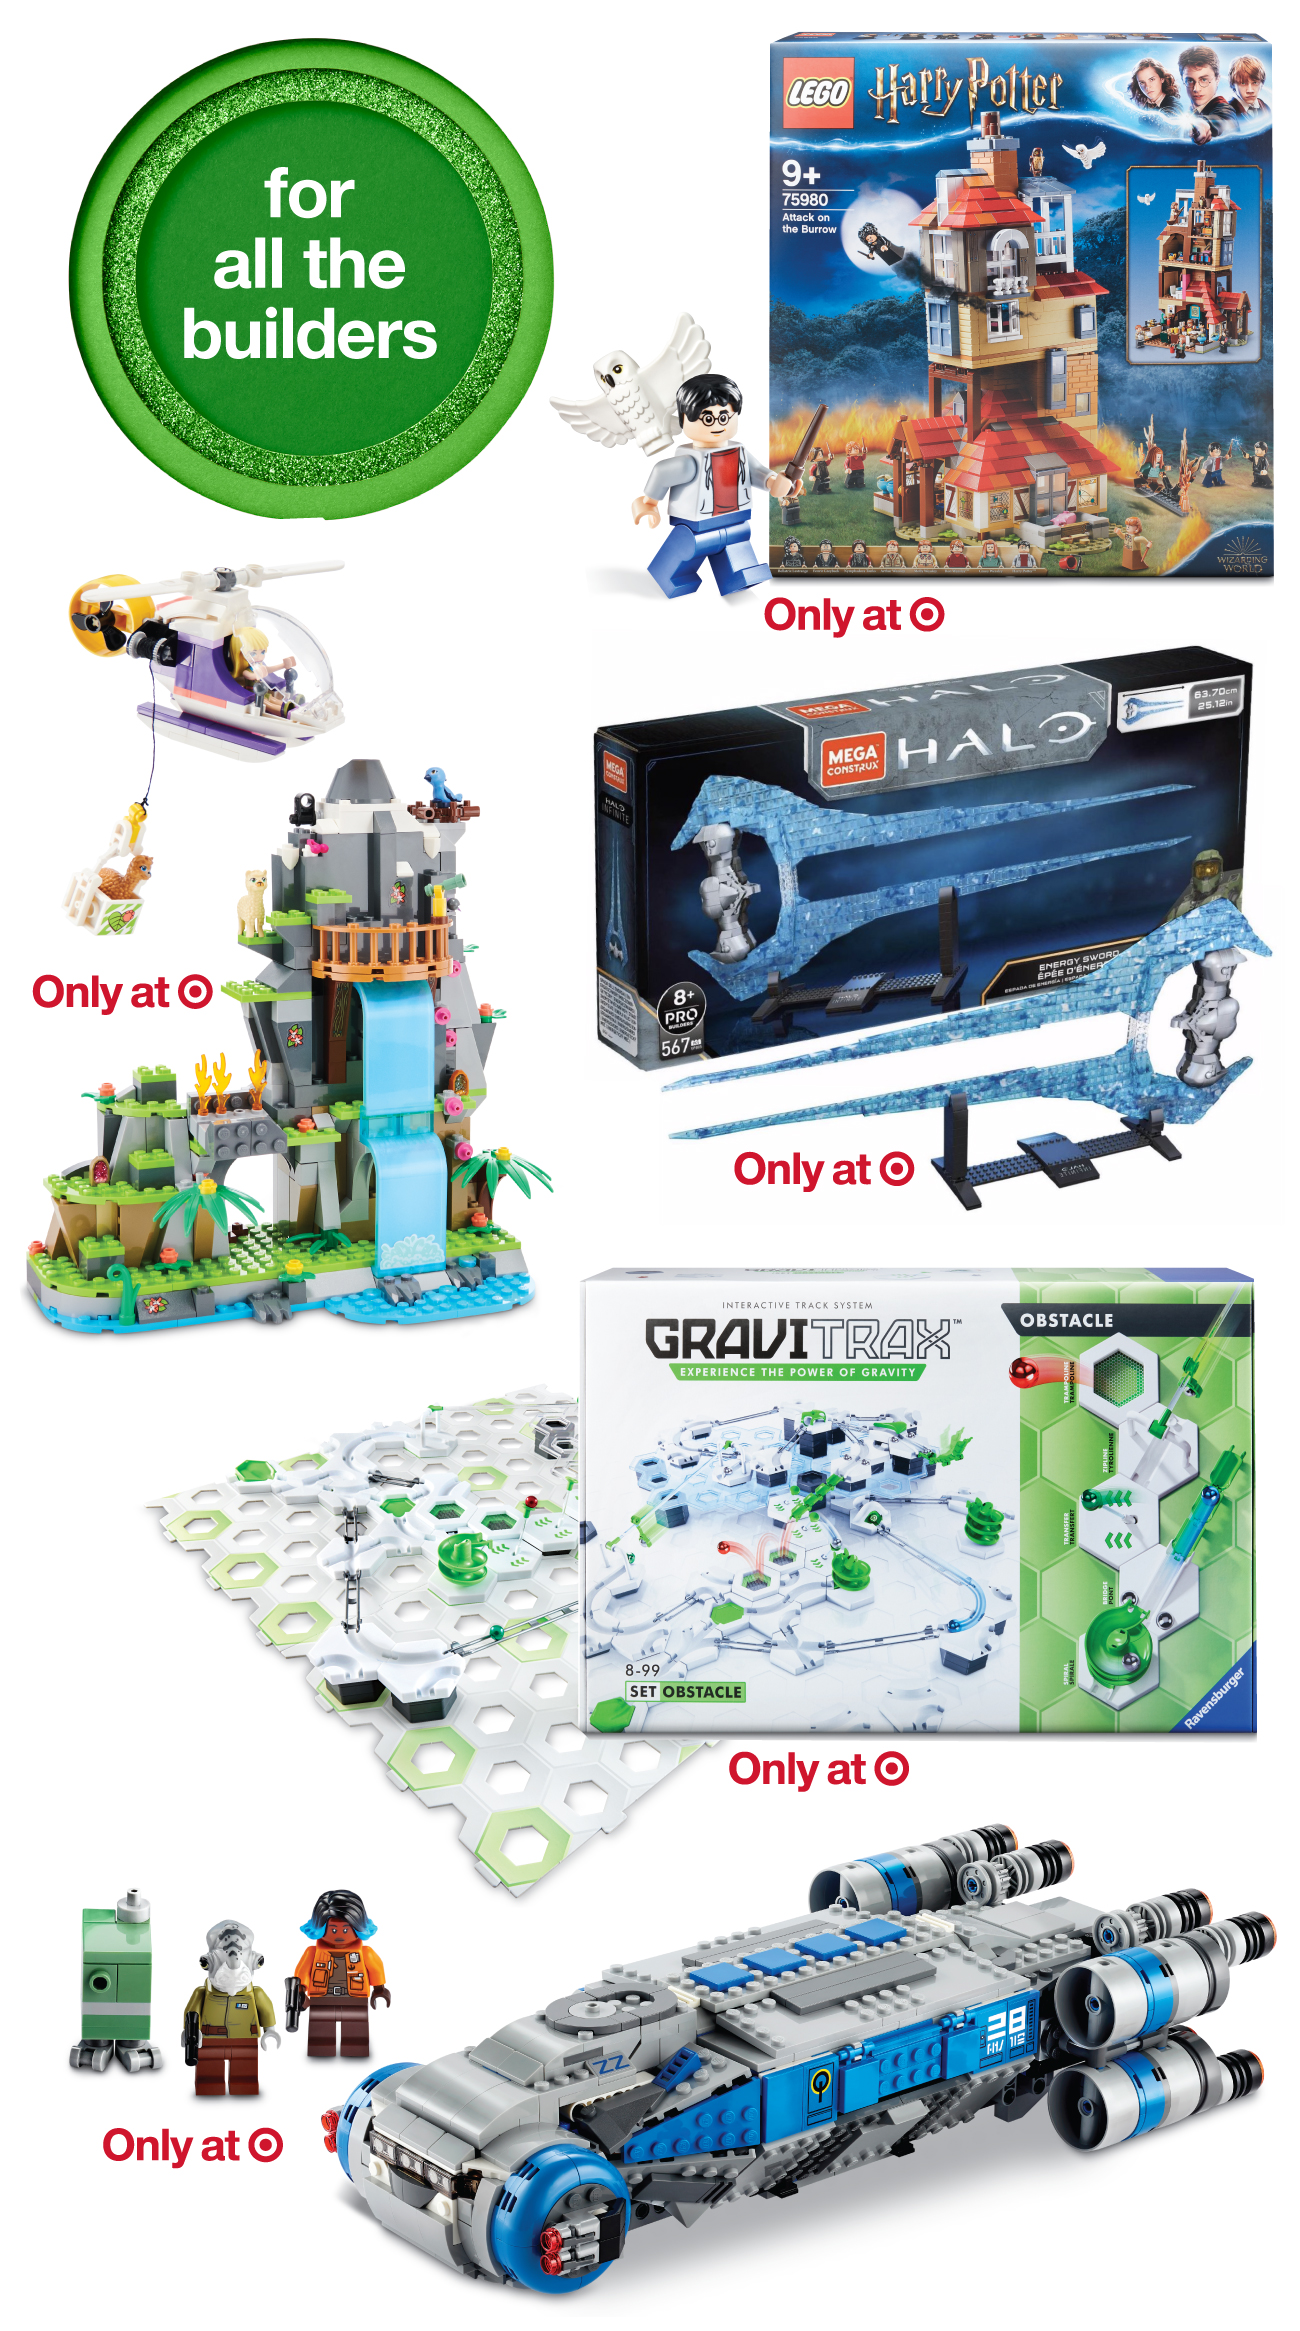 A collage of top toys and games for builders